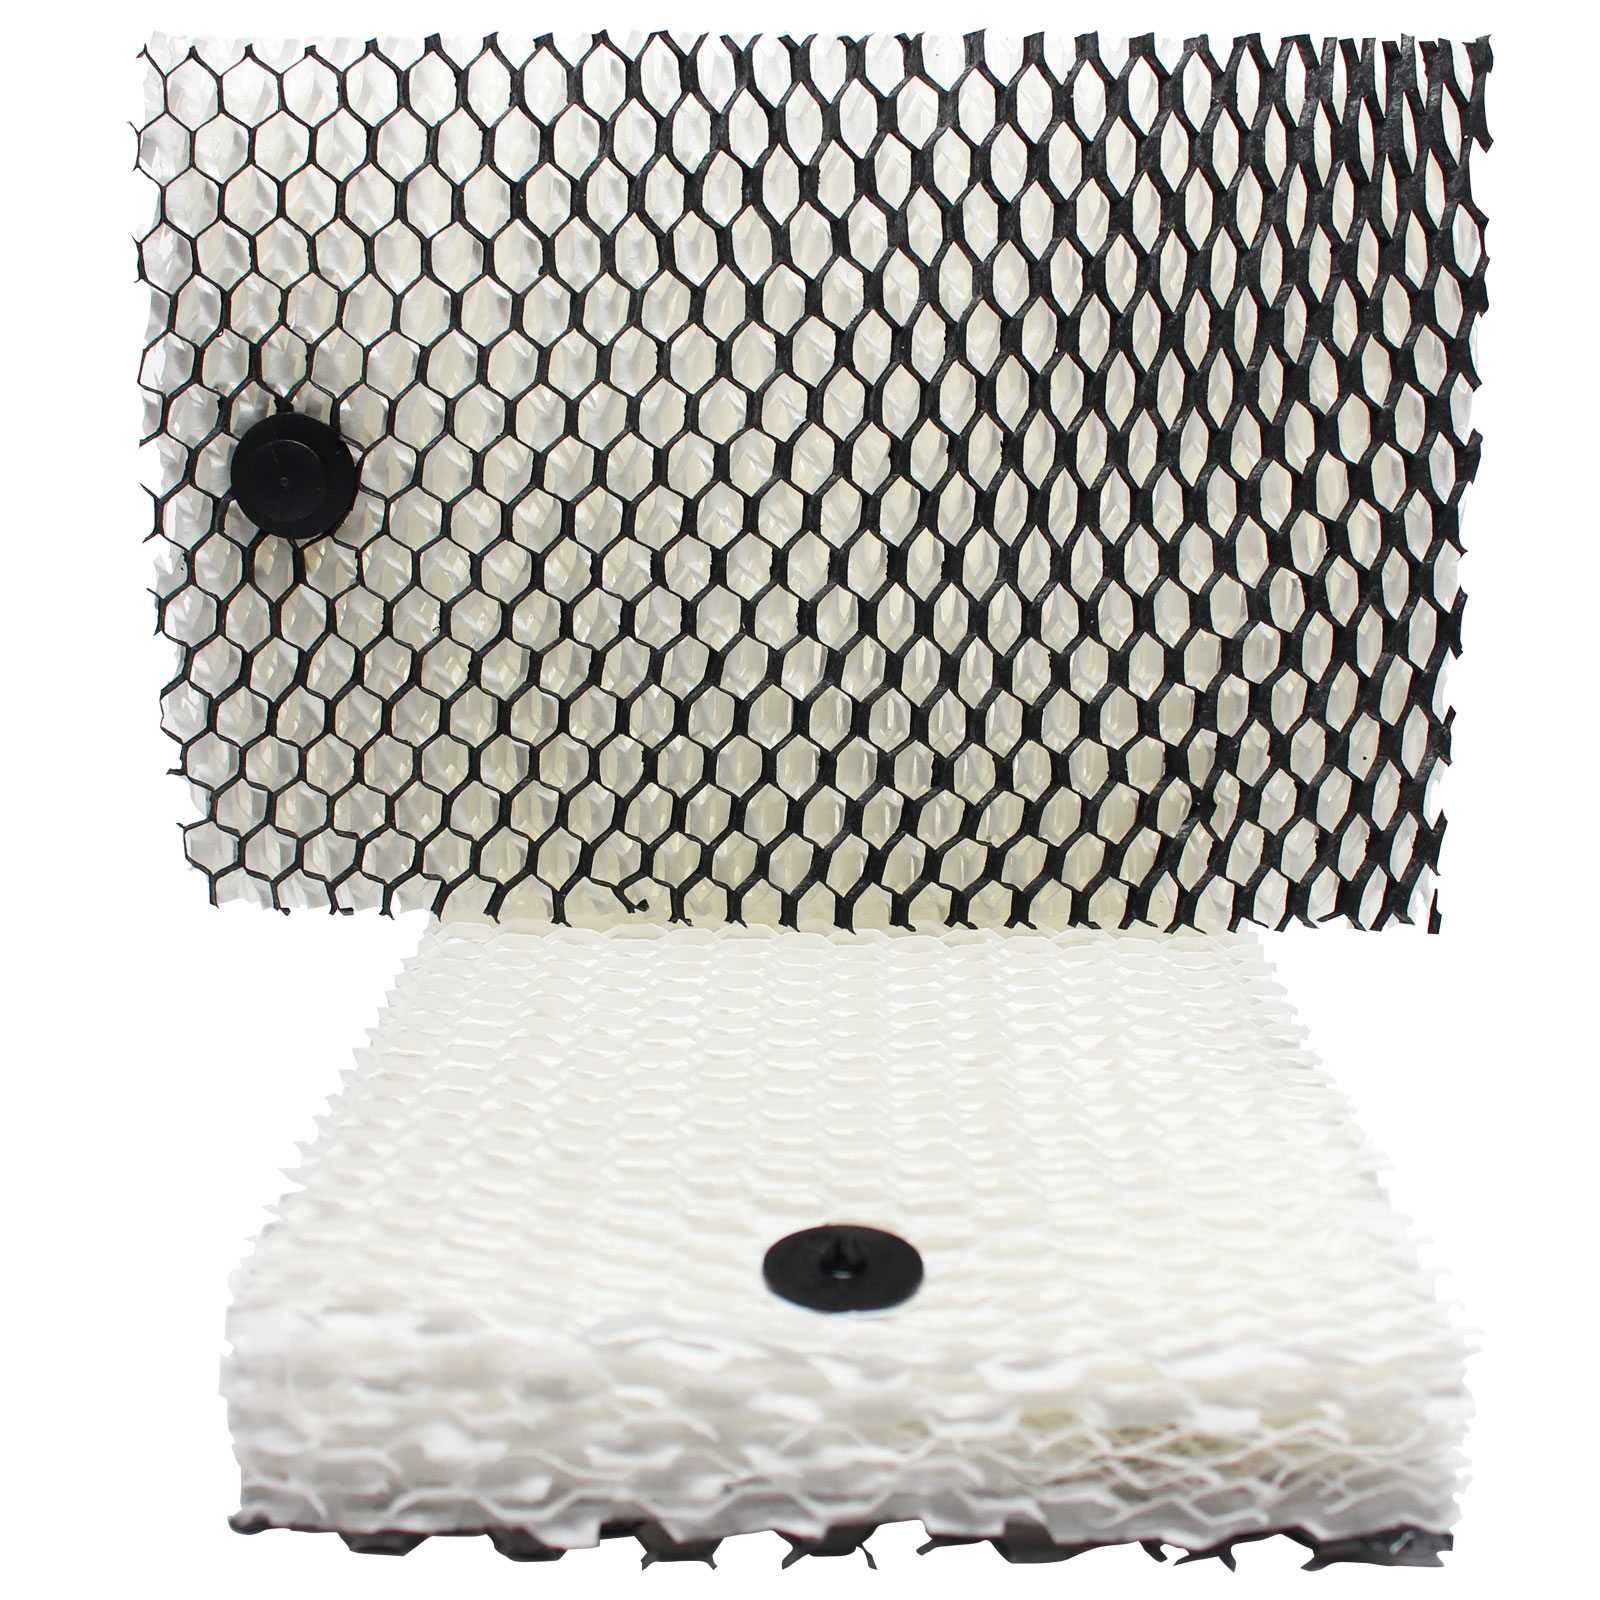 2-Pack Replacement Sunbeam SCM2412 Humidifier Filter  - Compatible Sunbeam SWF100P, HWF100 Humidifier Filter